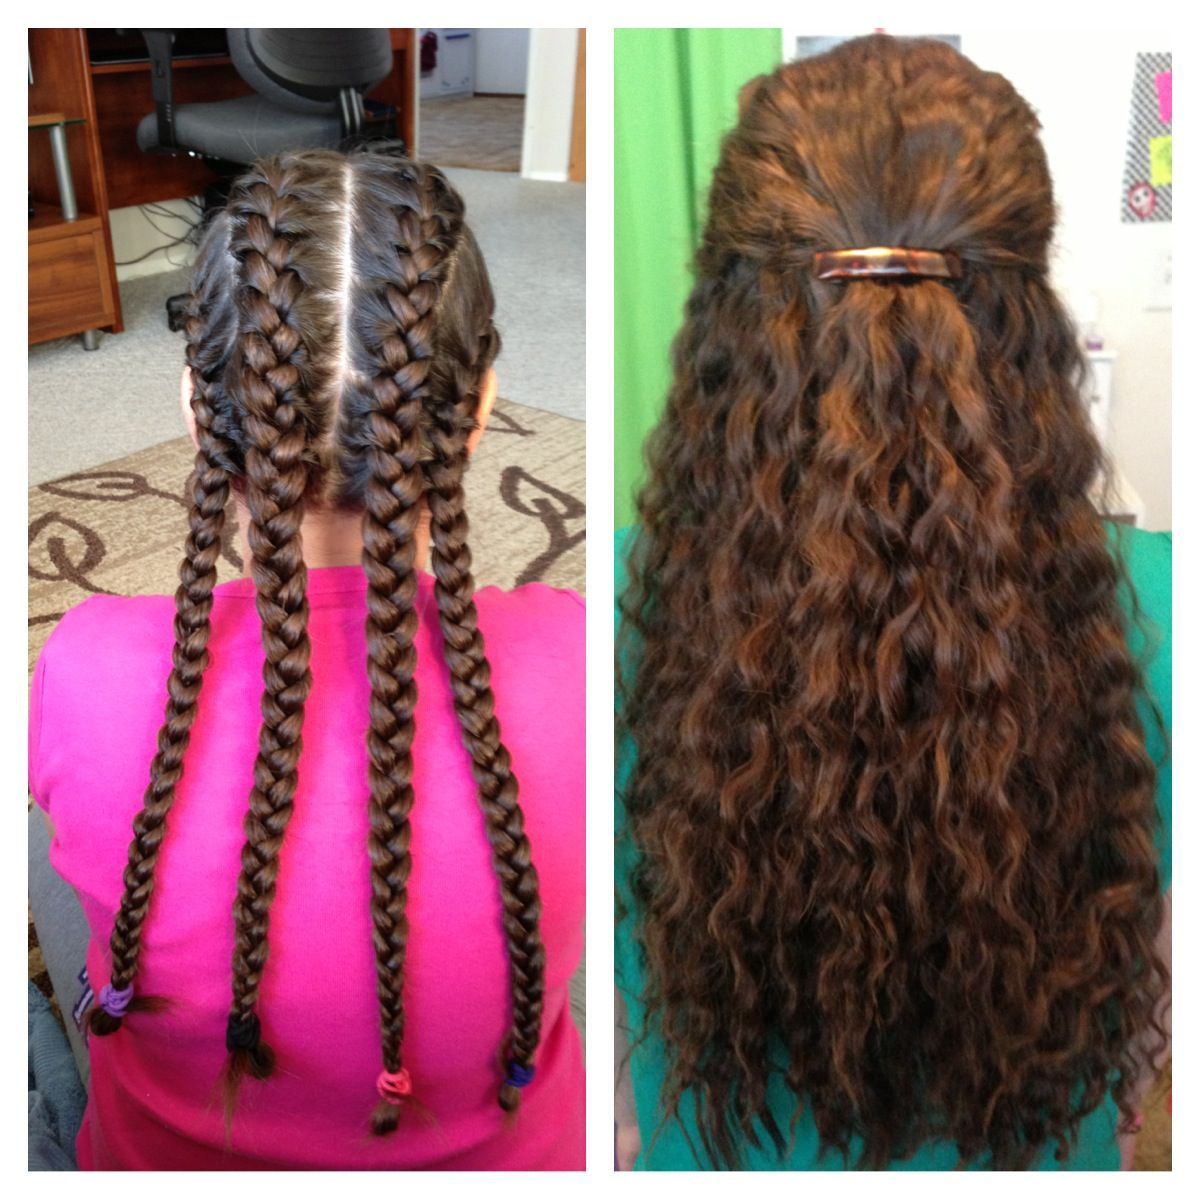 Four French Braids Left In Over Night Make For Beautiful Wavy Hair The Next Day Wavy Hair Diy Braided Hairstyles Hair Styles